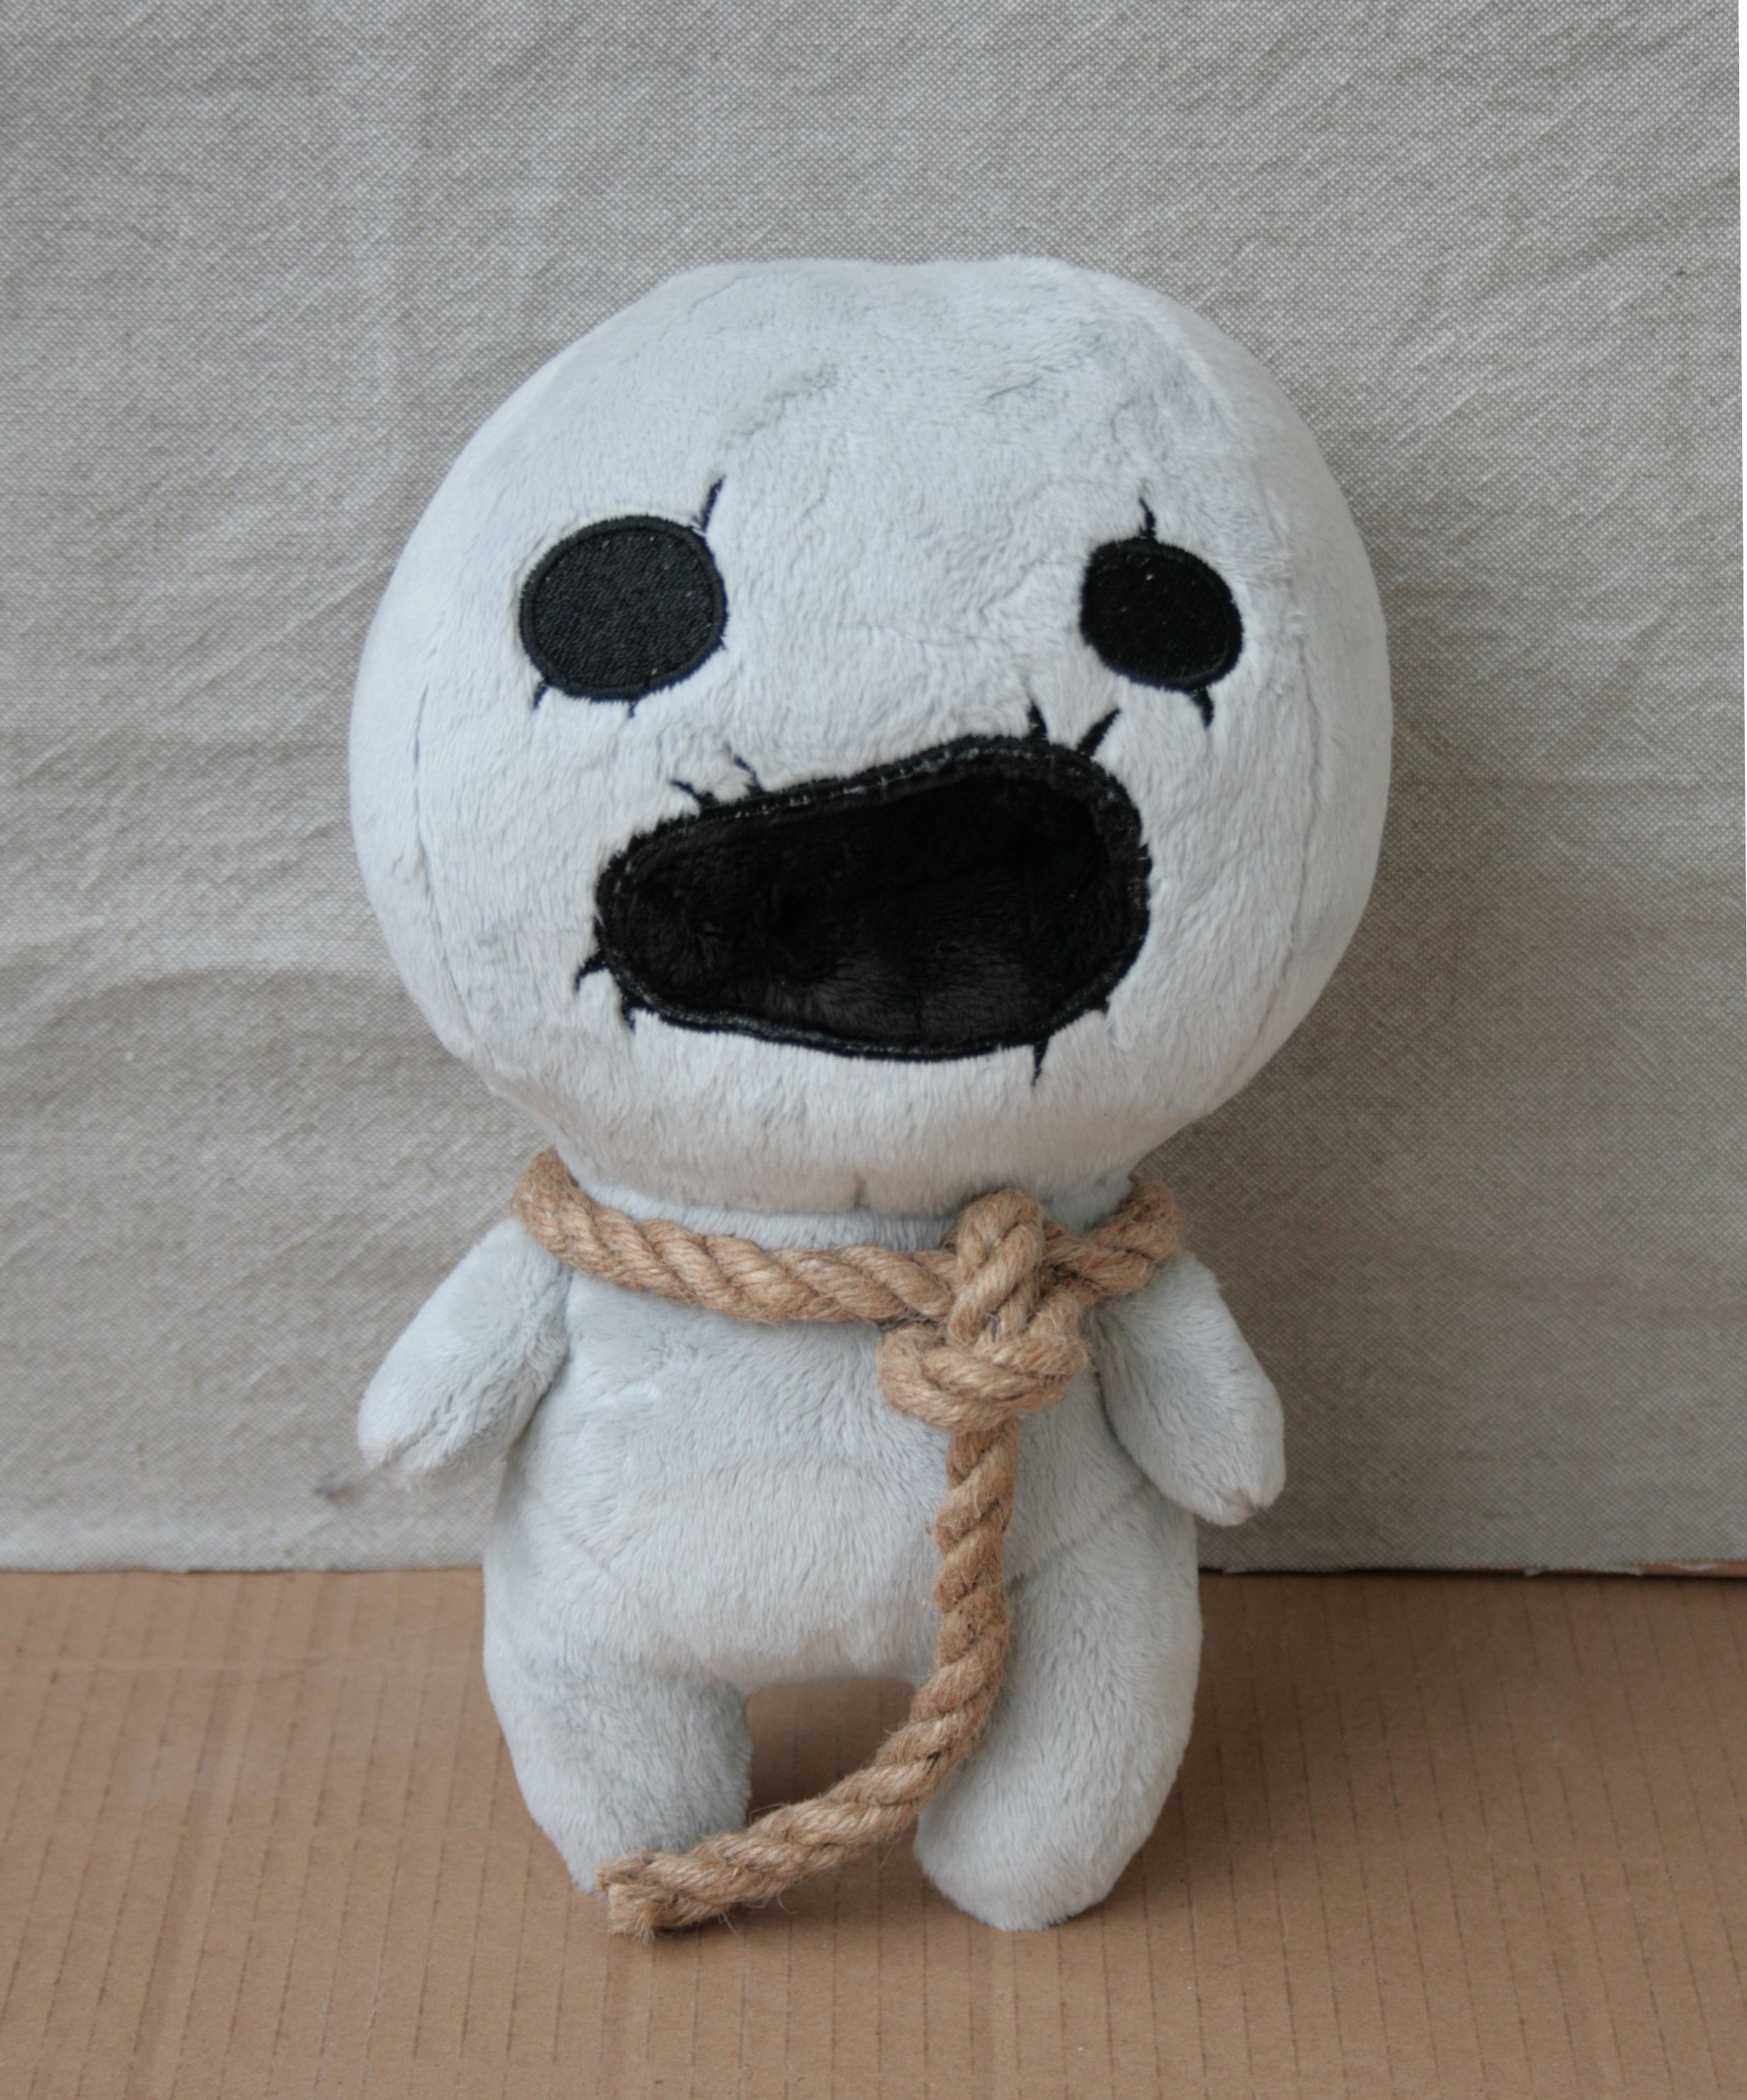 The Binding Of Isaac, Clay Crafts